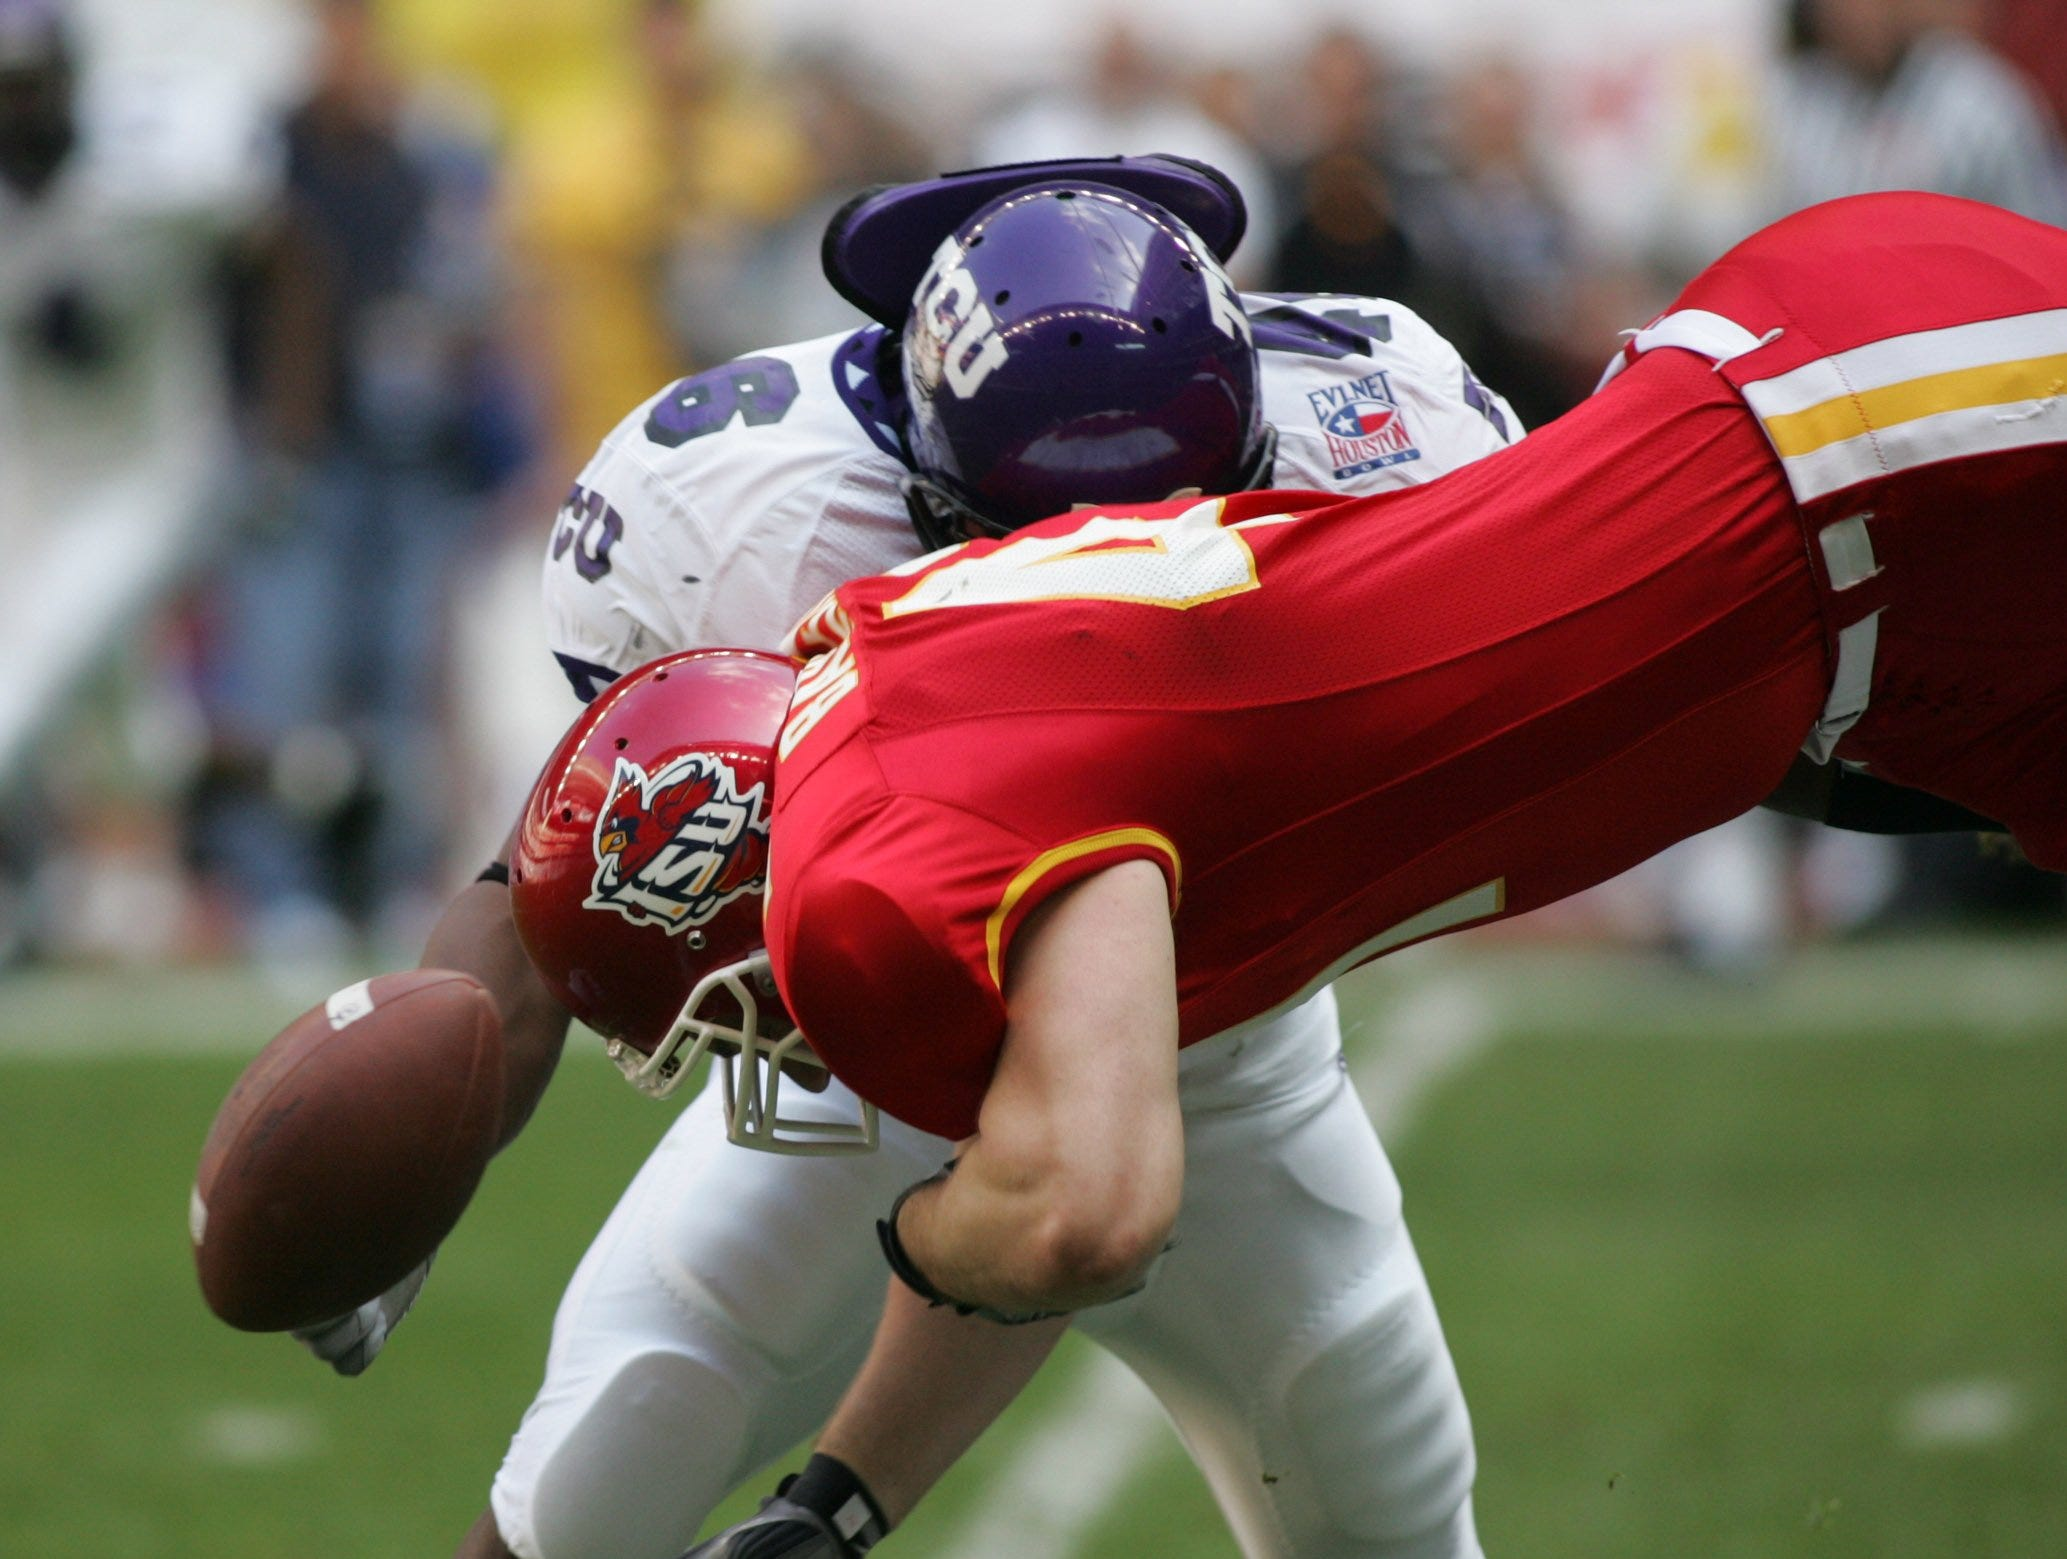 Iowa State tight end Ben Barkema, foreground, fumbles the football against Texas Christian in the first quarter of the 2005 Houston Bowl at Reliant Stadium in Houston, Texas. Barkema made three receptions for 24 yards.